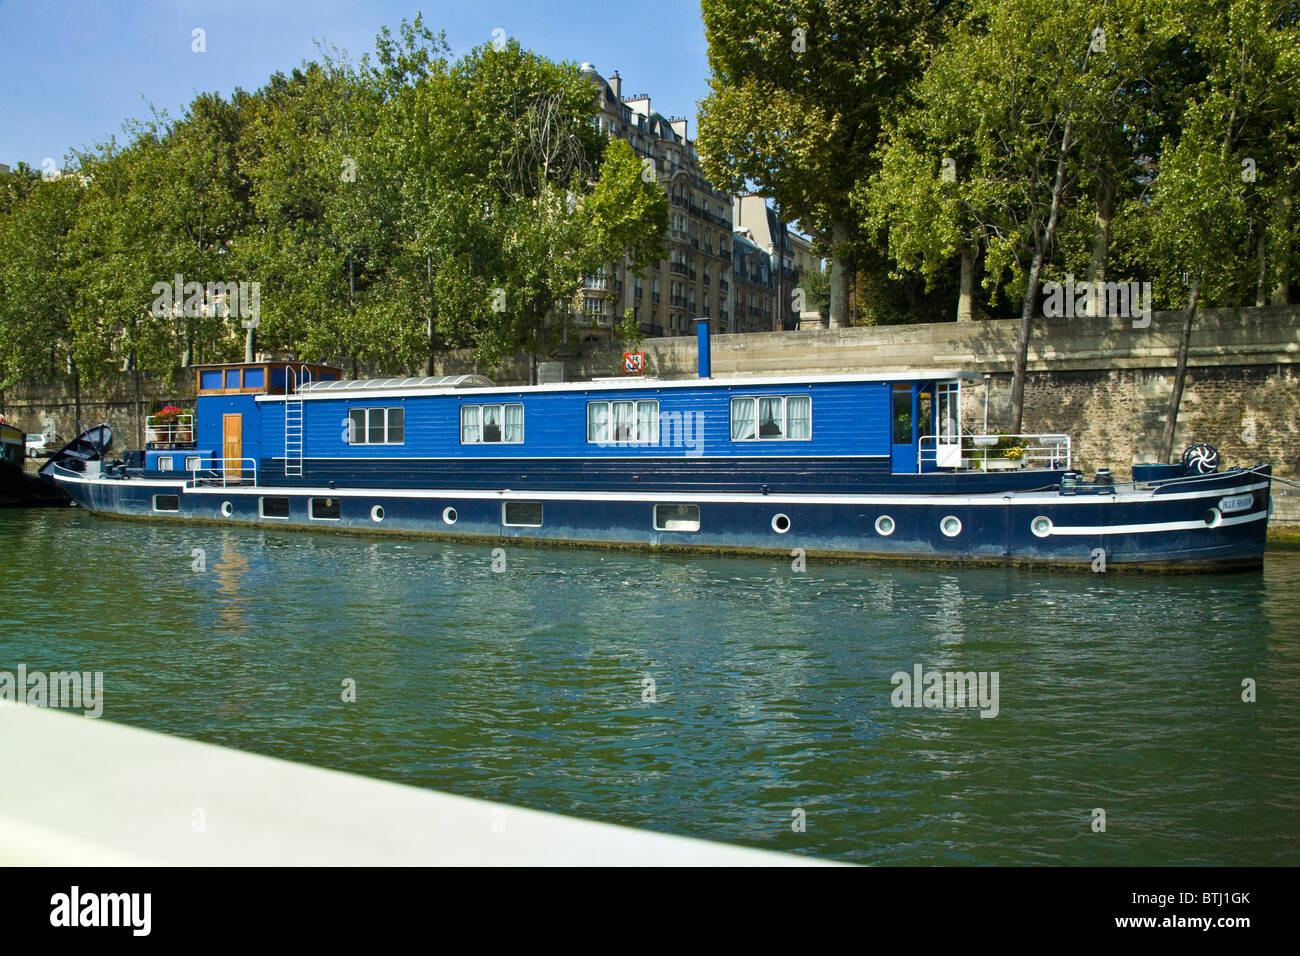 House Boat, River Seine, Paris, France - Stock Image